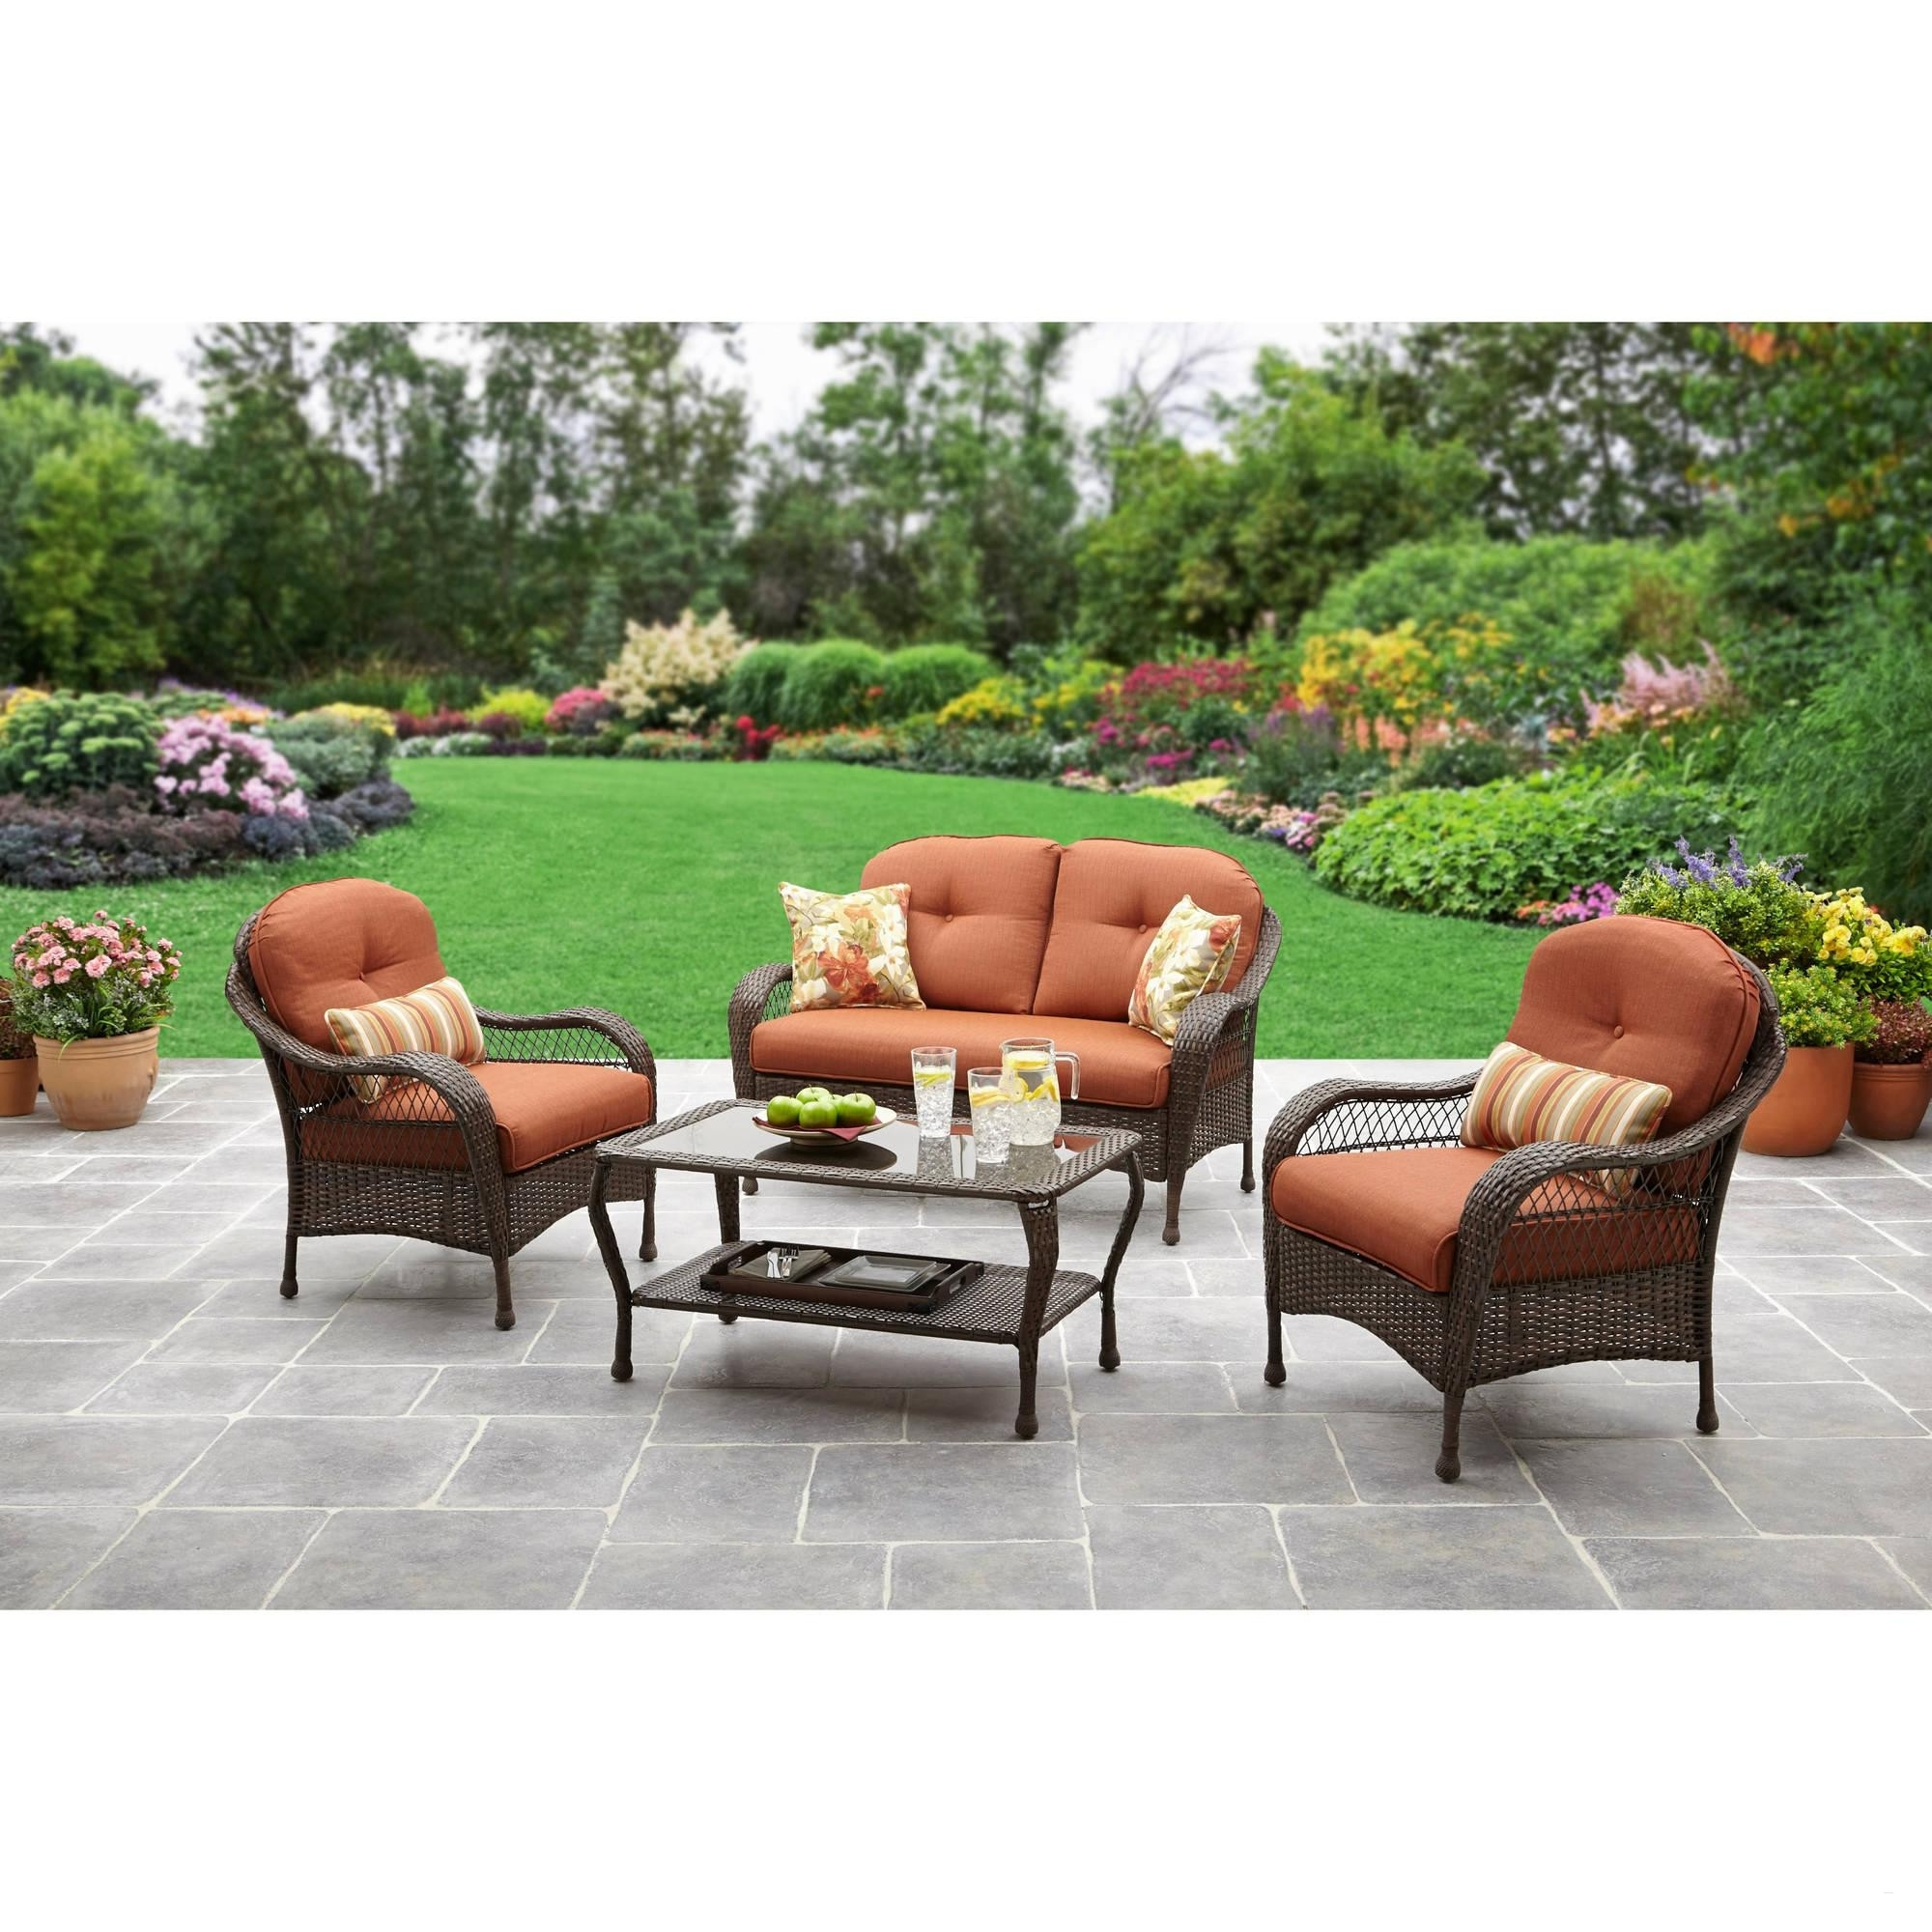 Sears Patio Furniture Conversation Sets Intended For Preferred Wonderful Sears Outdoor Cushions – Bomelconsult (View 11 of 20)